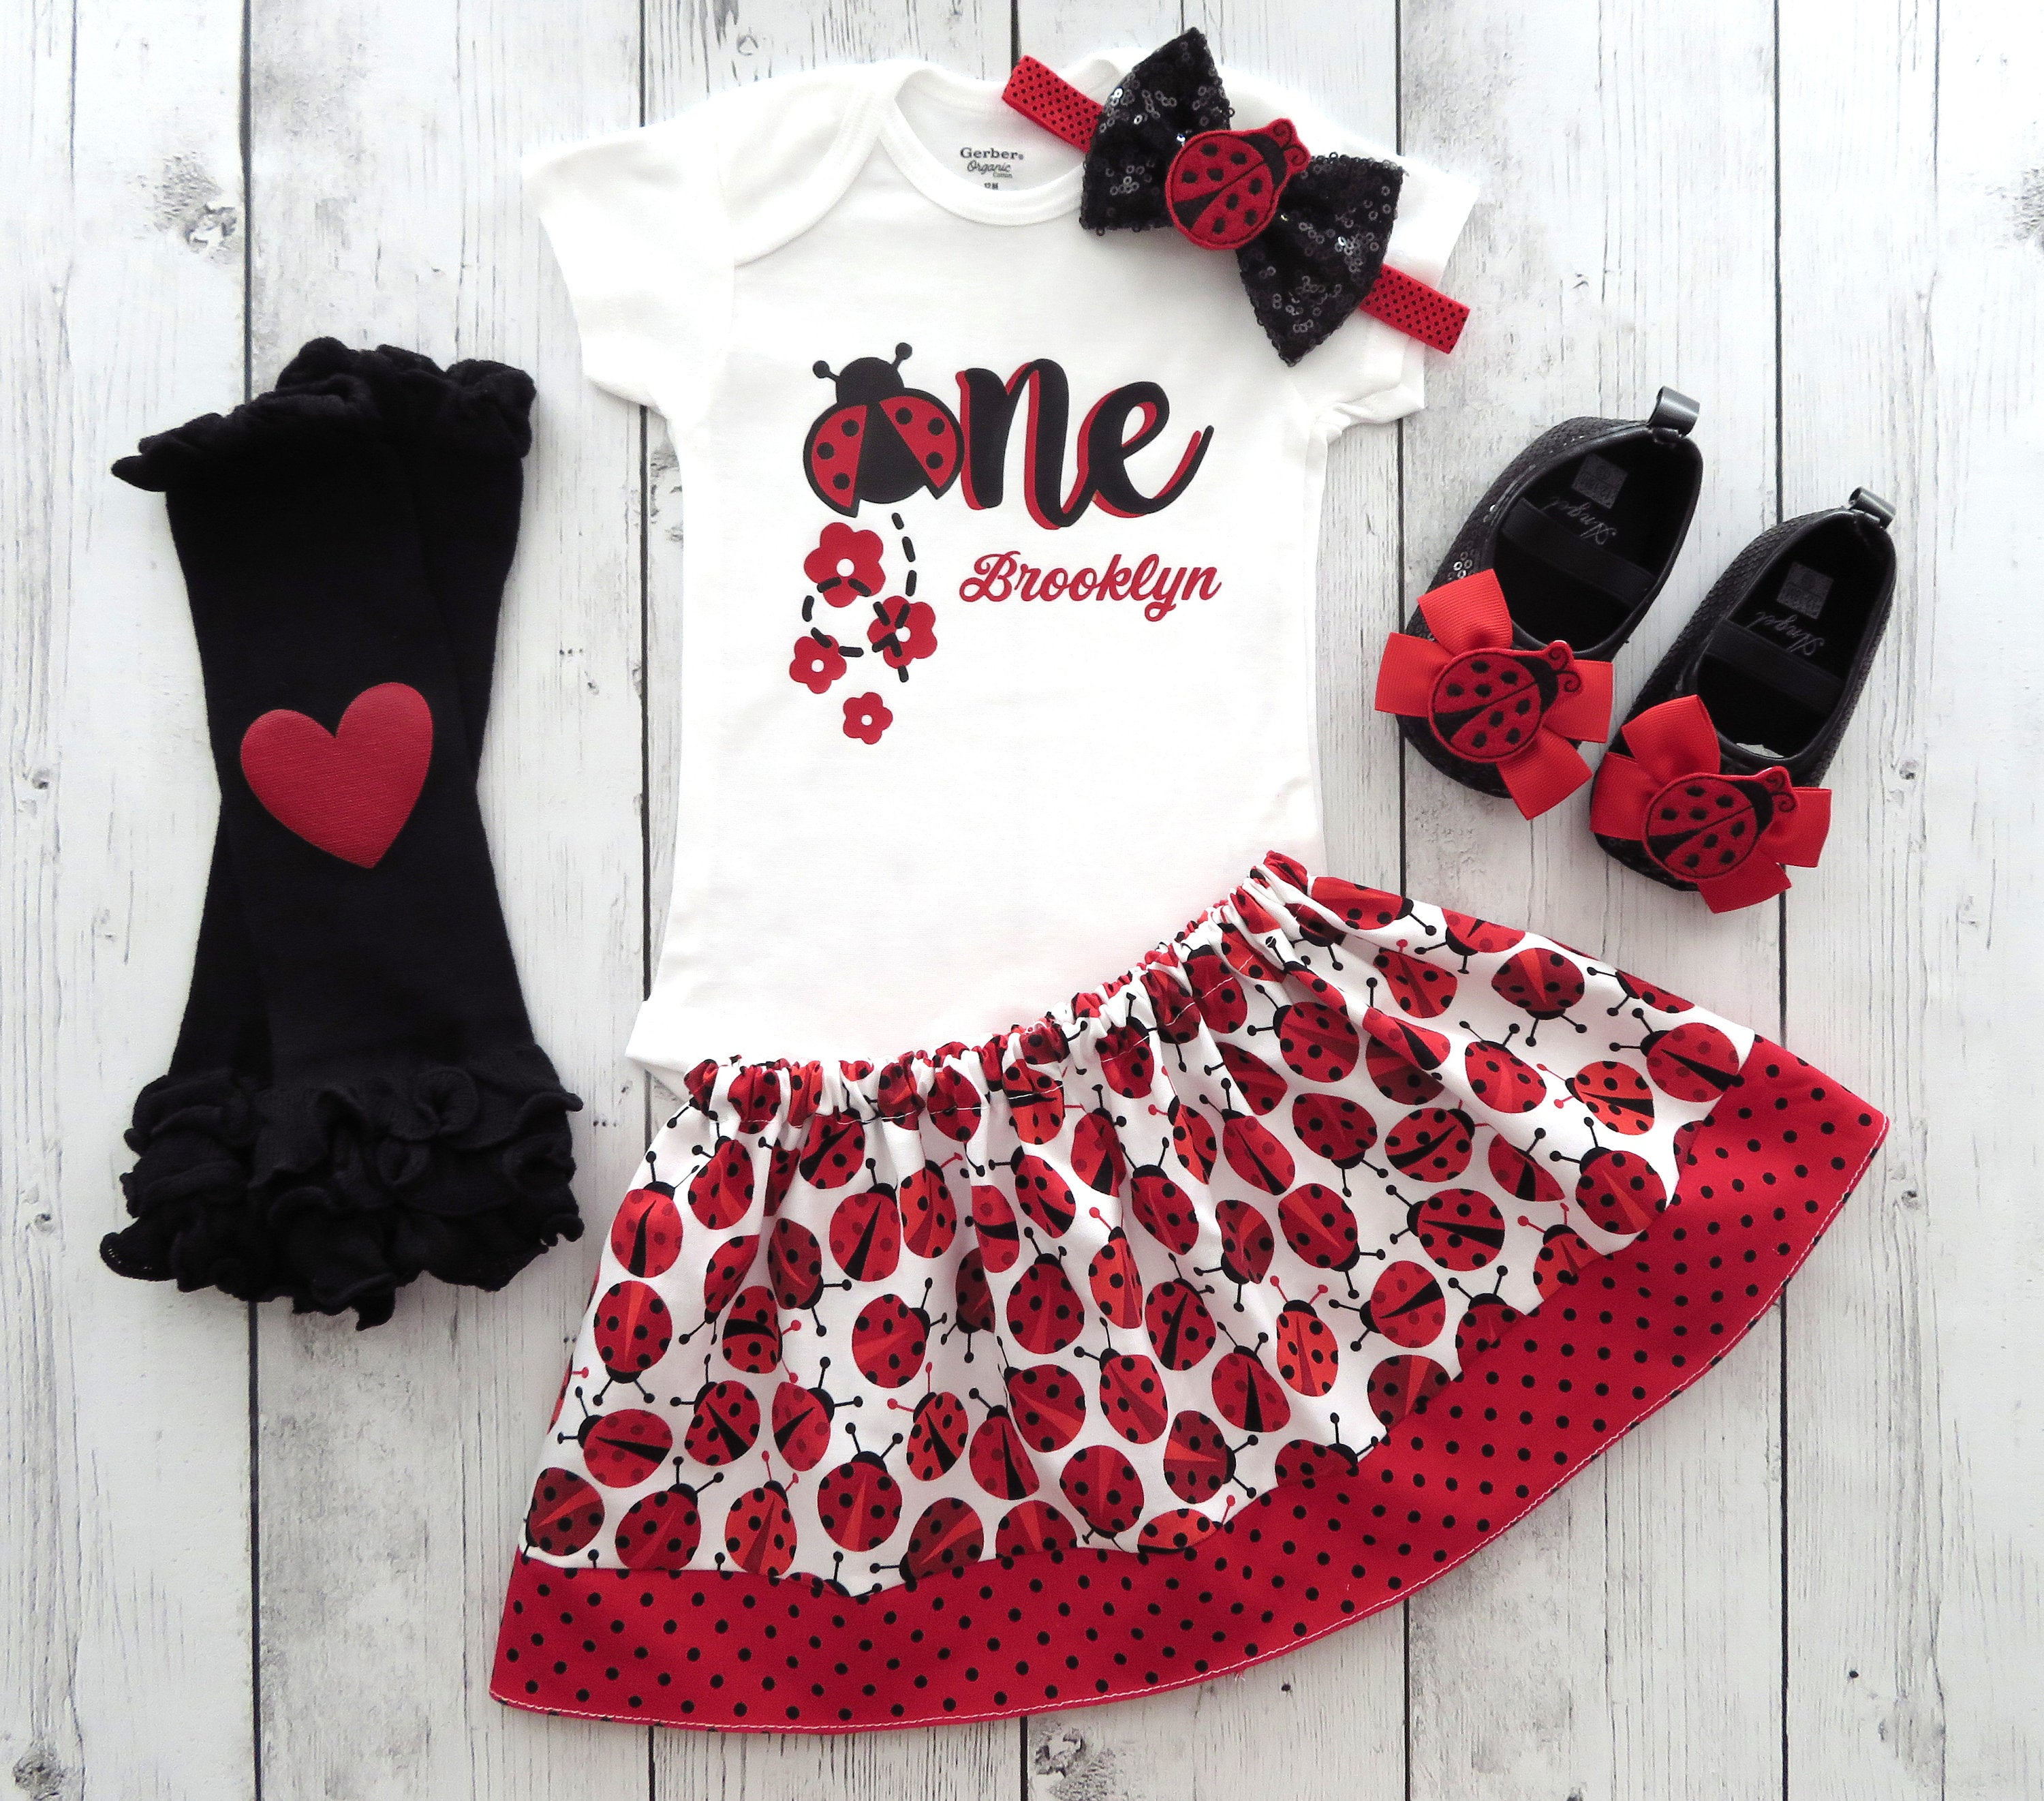 Ladybug First Birthday Outfit - girl first birtday dress, ladybug birthday, personalized shirt, ladybug red black, ladybug headband